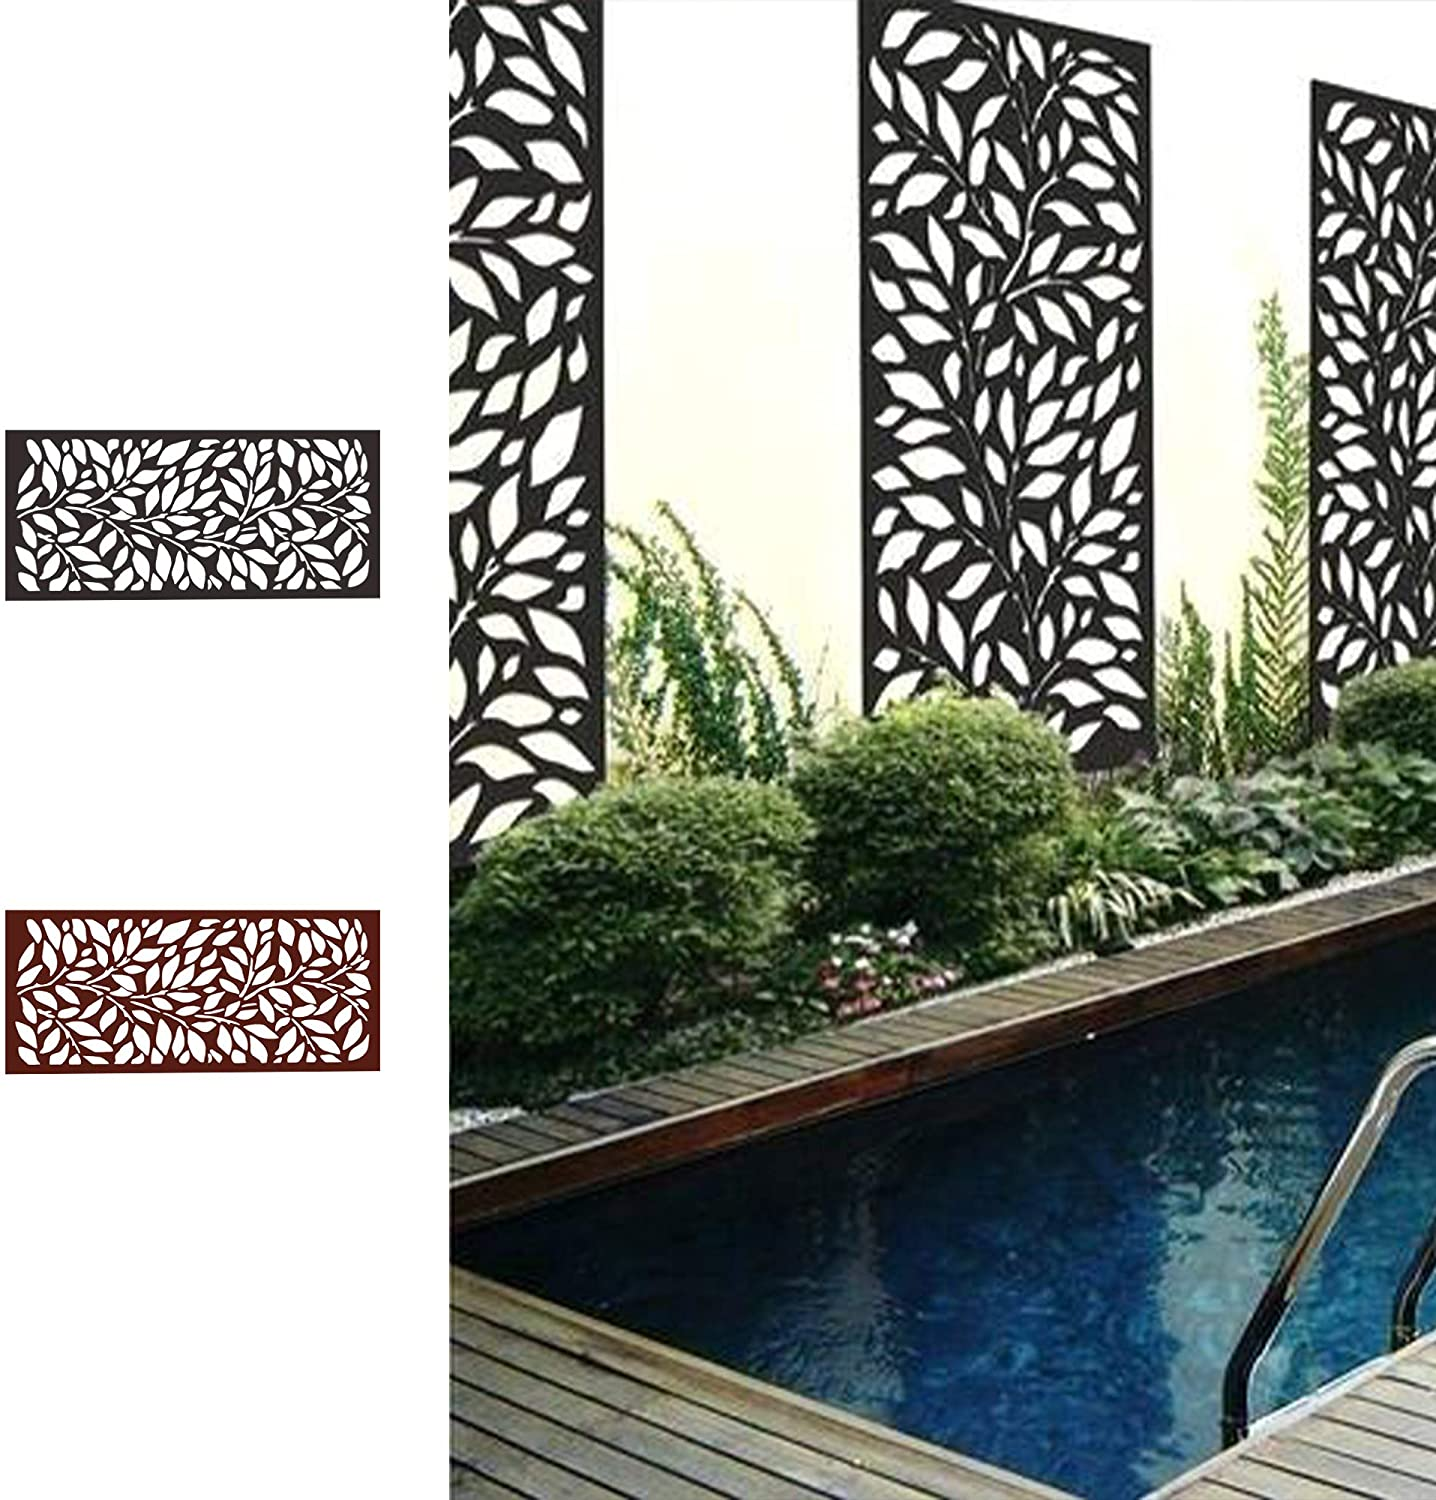 Decorative Laser Cut Metal Privacy Screen Outdoor Divider with Stand from Amazon